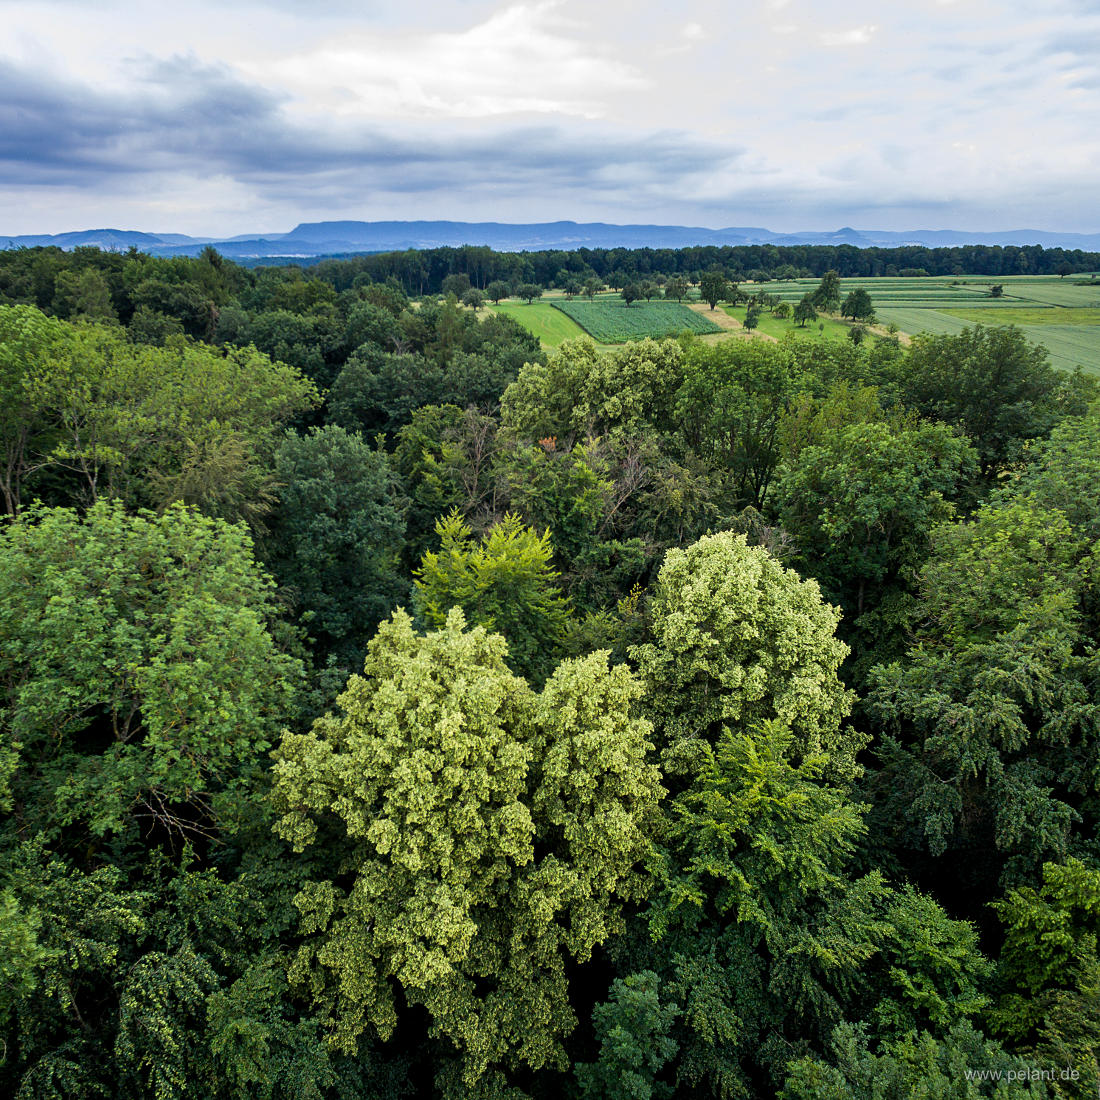 aerial photograph of flowering lime trees (Tilia spec.) in the forest